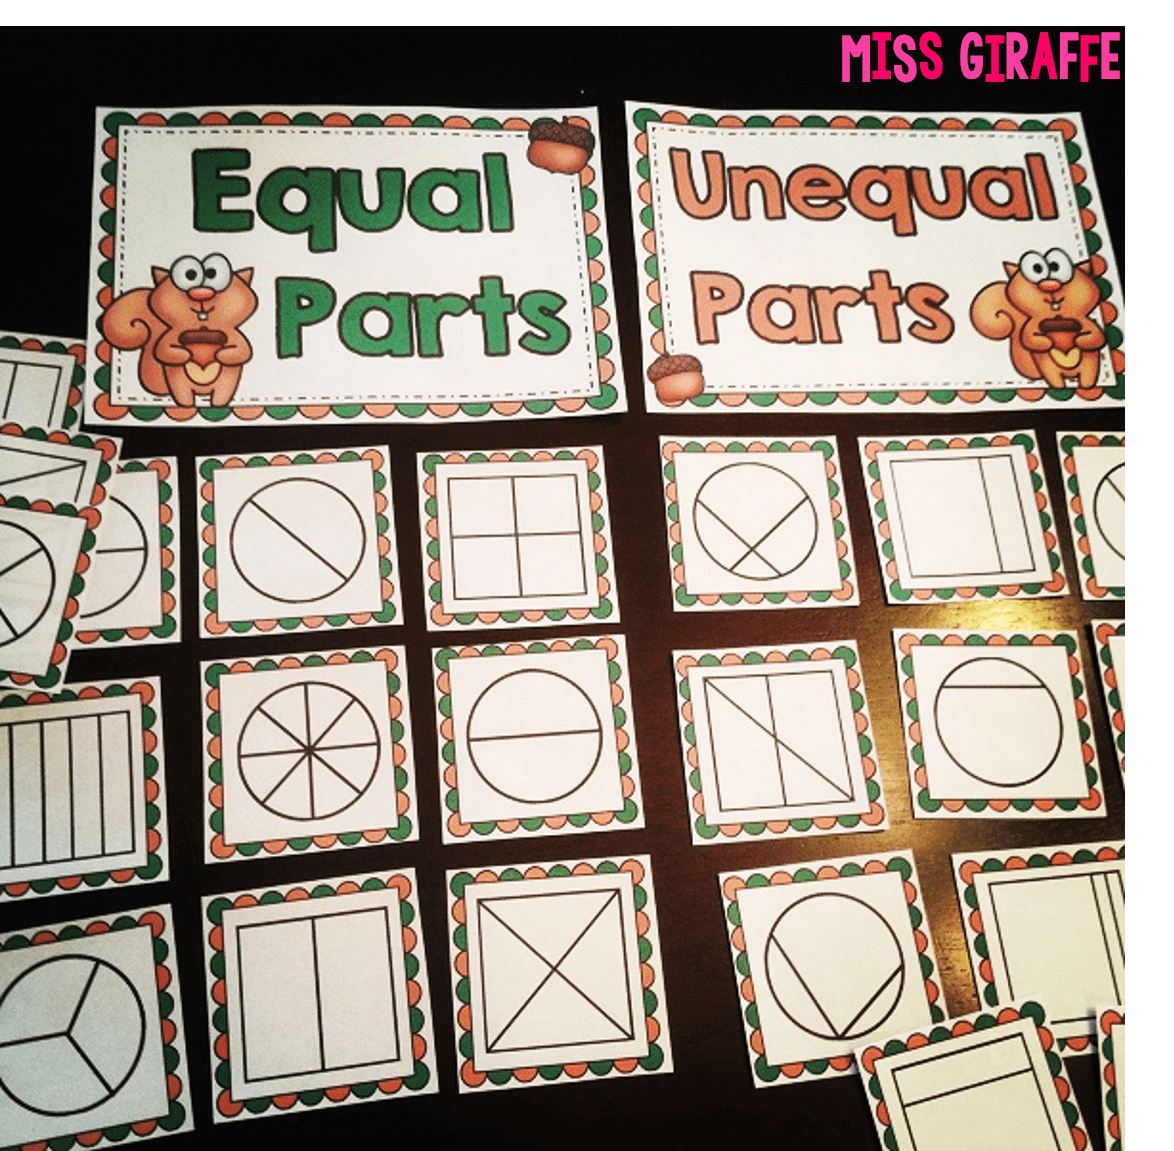 Fractions In First Grade Practing Equal Shares By Sorting Shapes With Equal Parts And Unequal